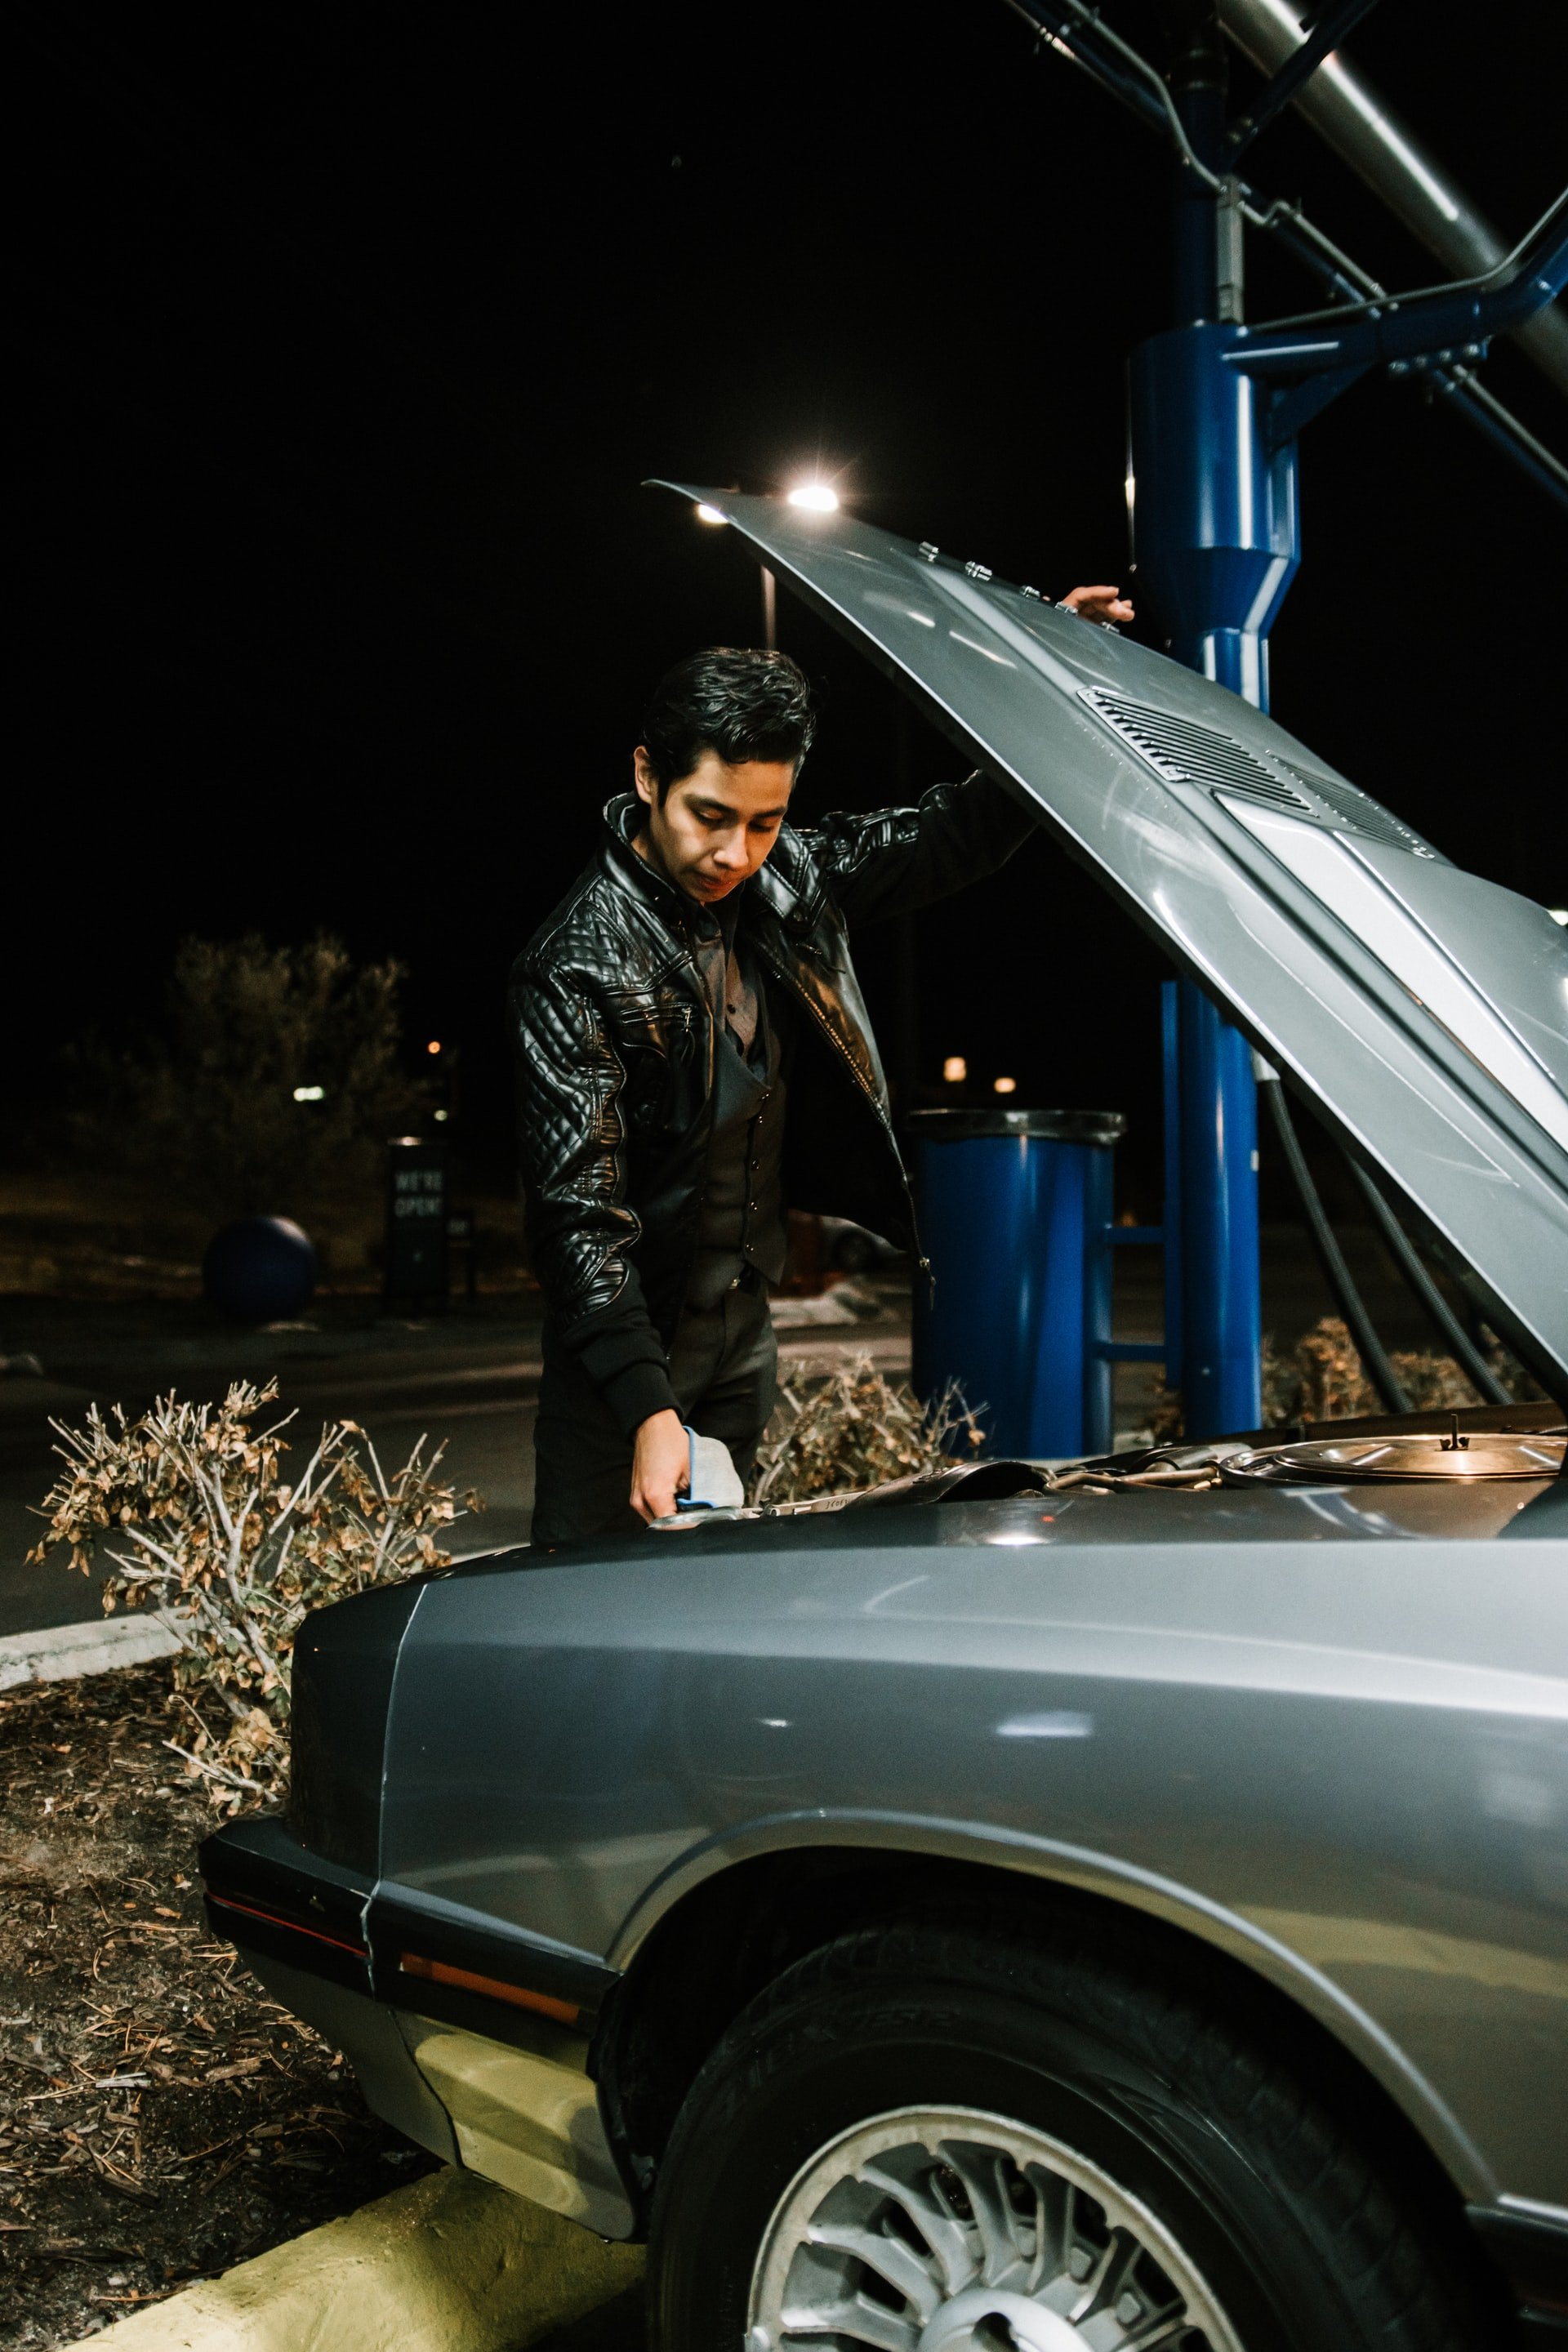 A young man holding up a hood of a car   Source: Unsplash